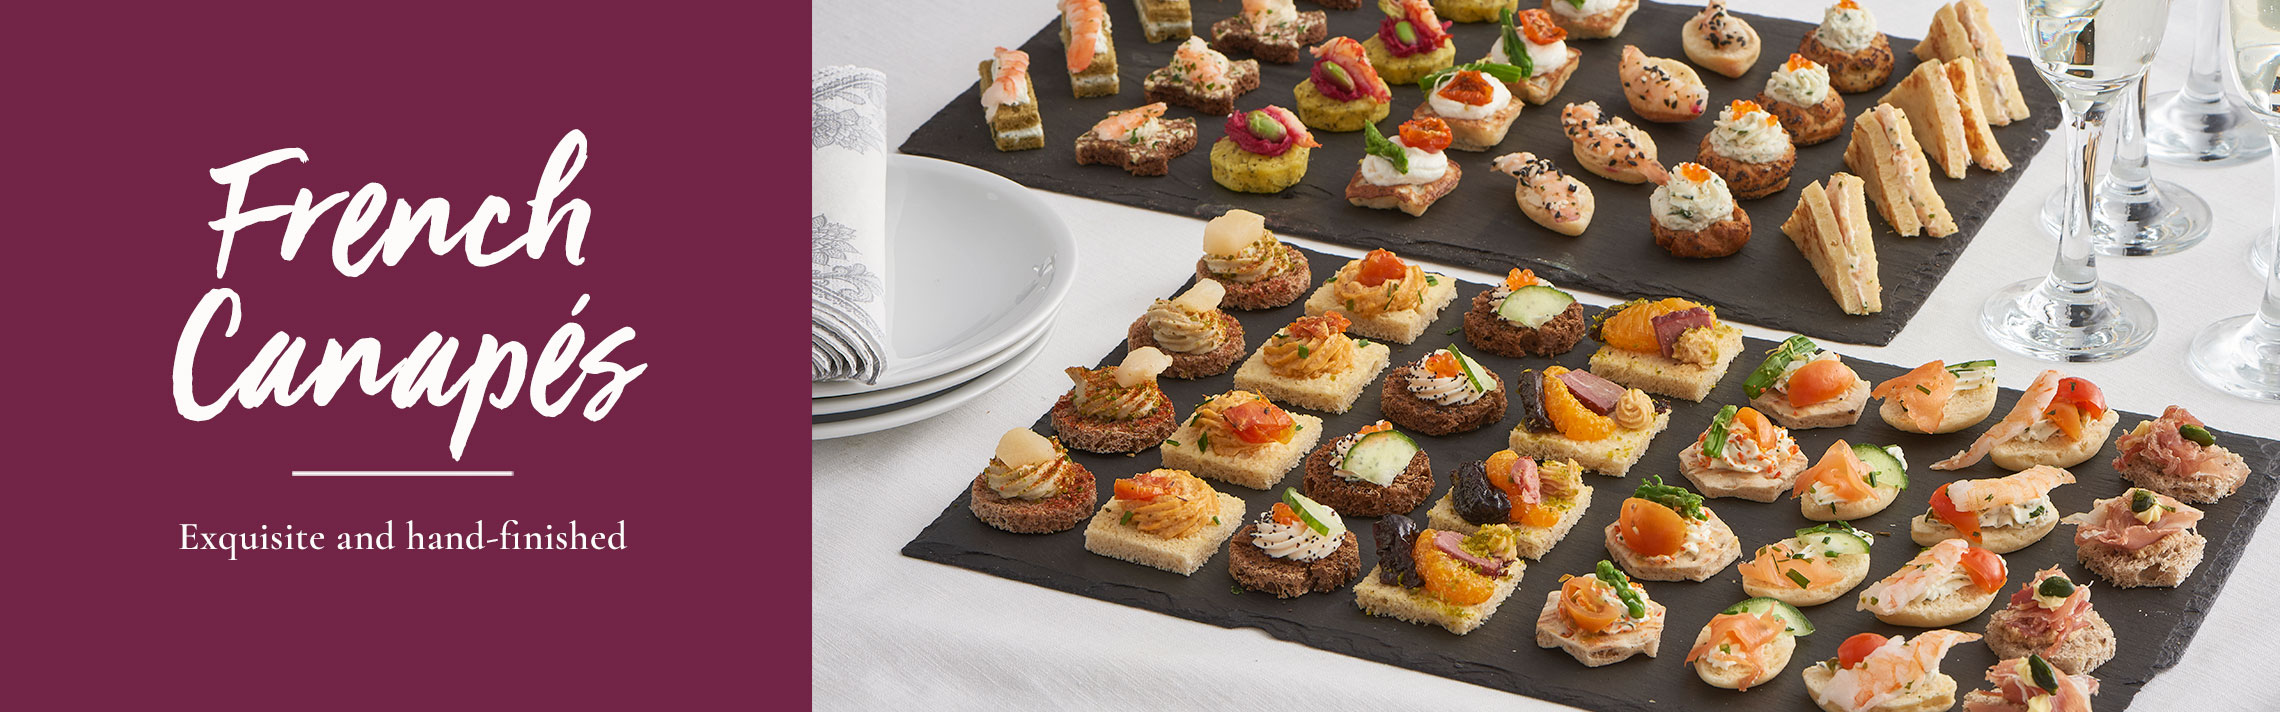 Canapes - Tipiak Foodservice - Canapes, Macarons, Sweet Patisserie